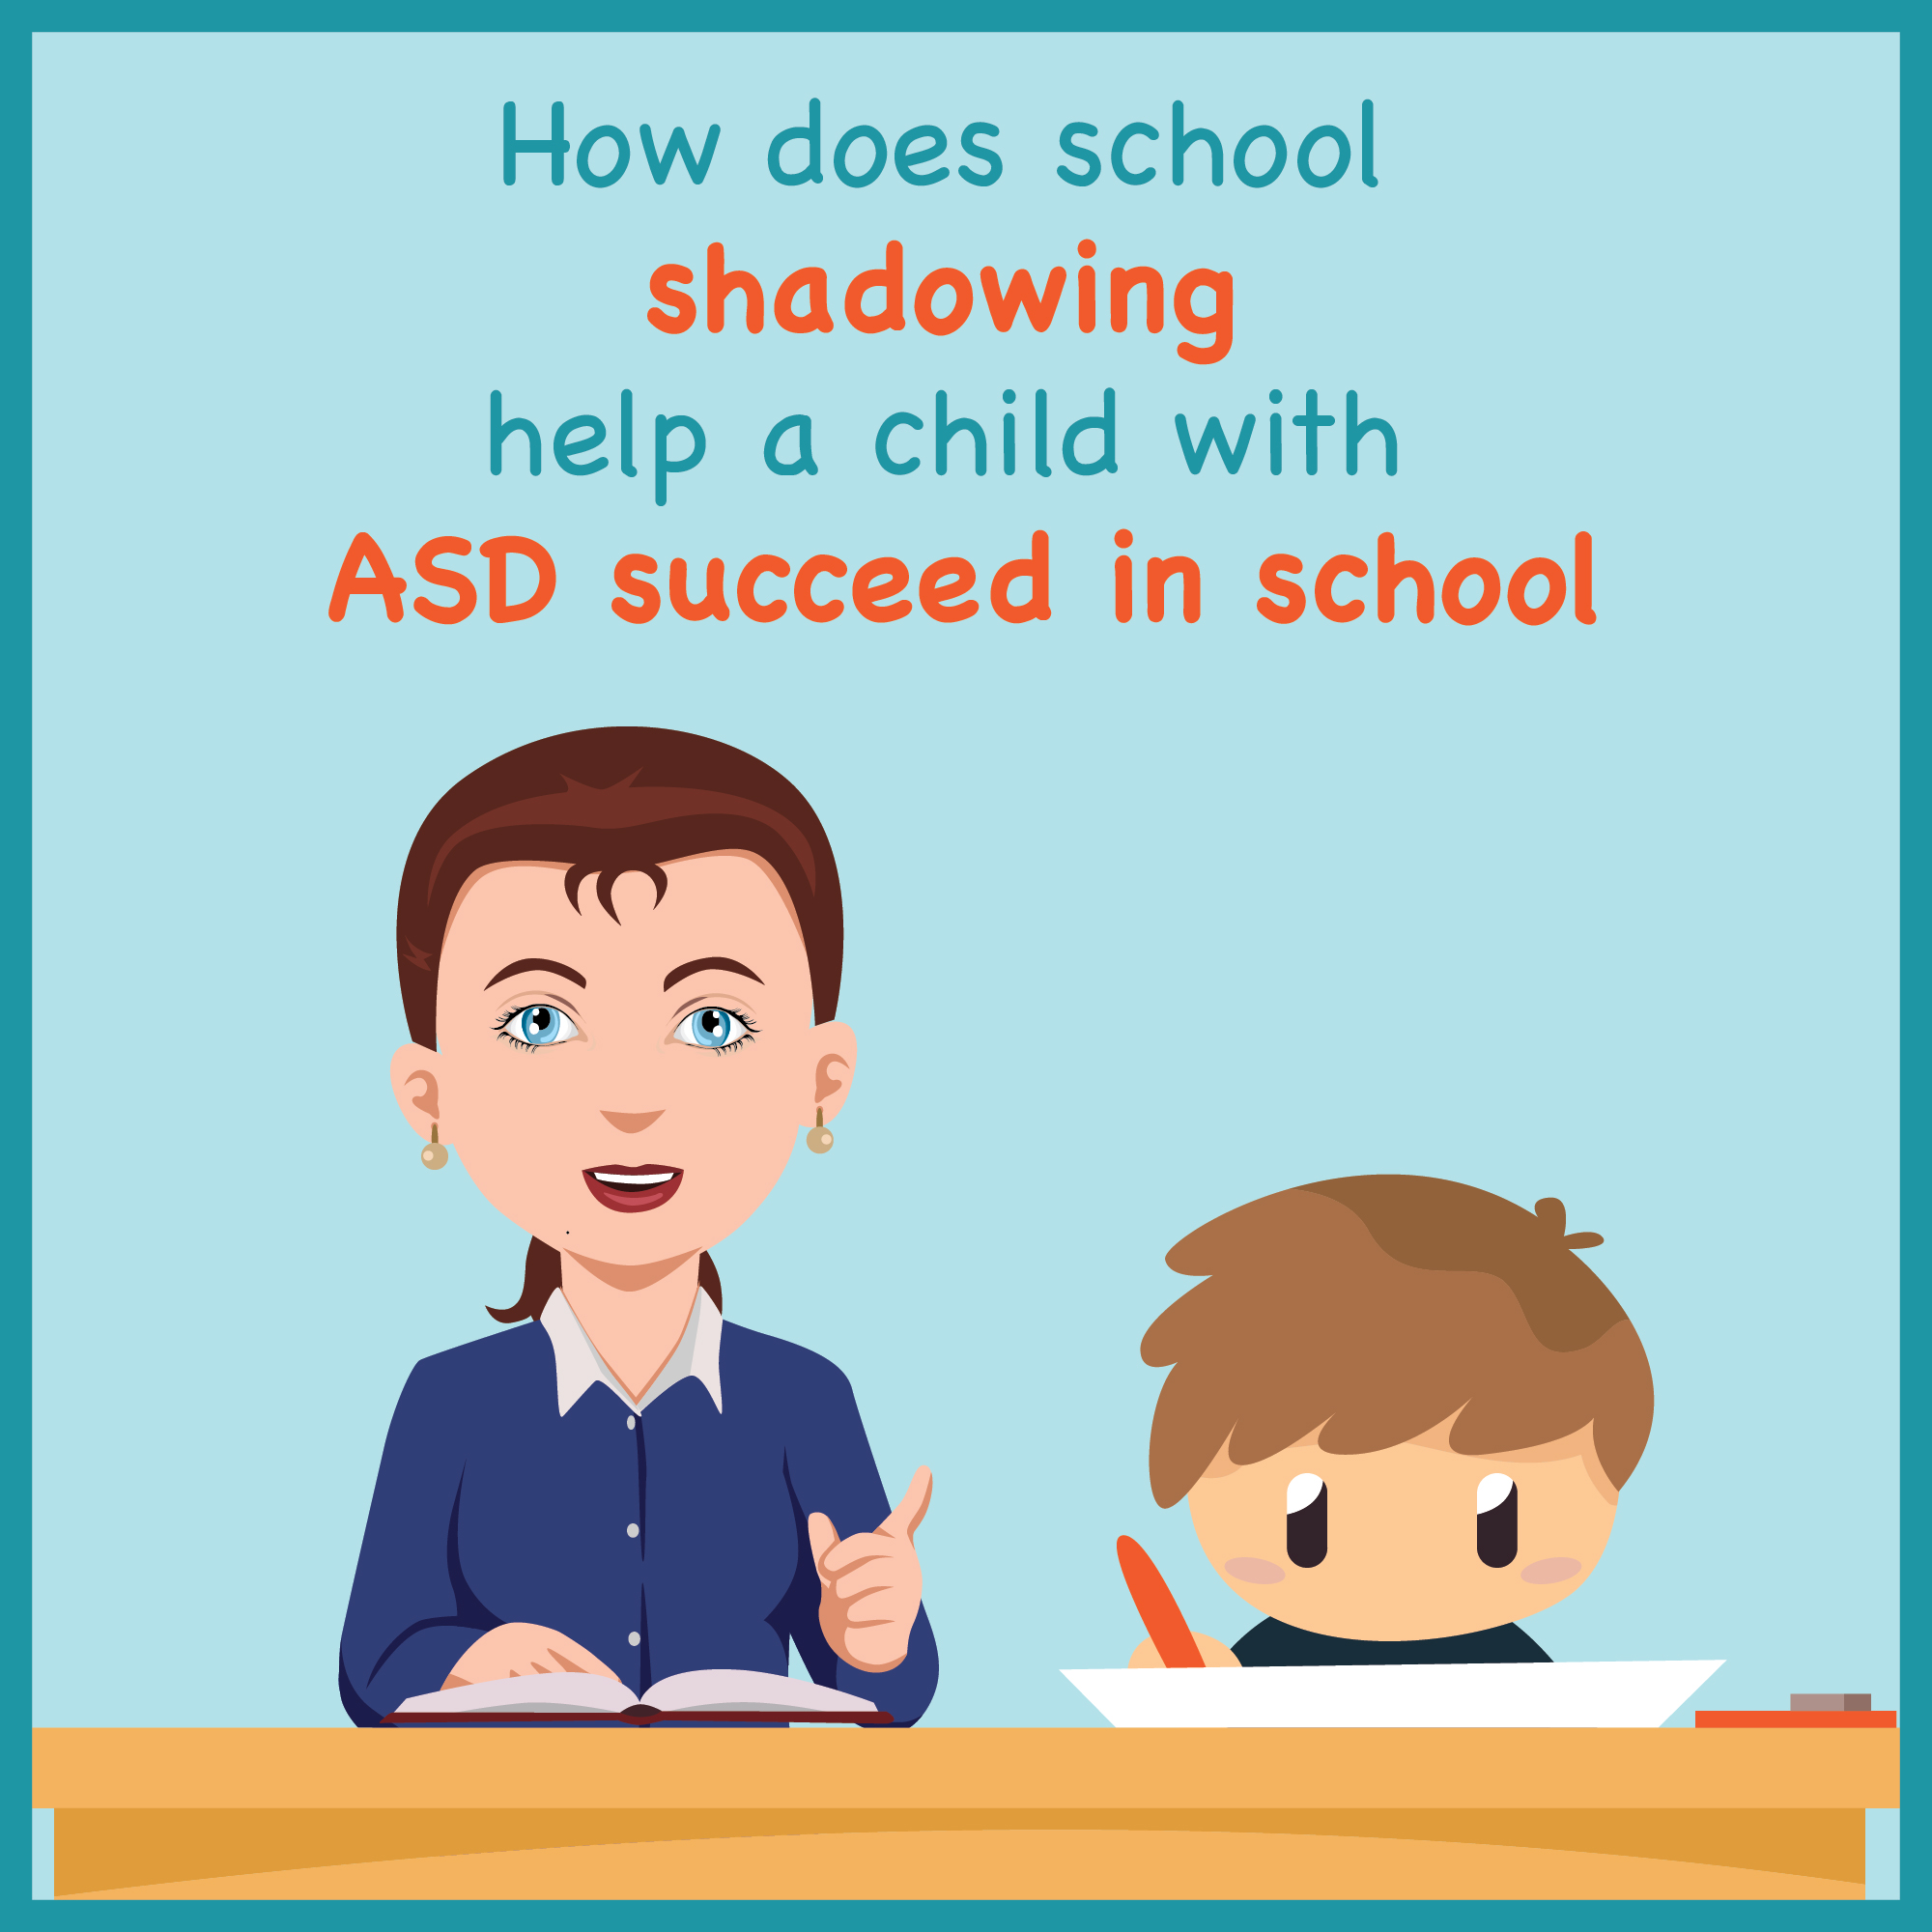 How does school shadowing help a child with ASD succeed in school